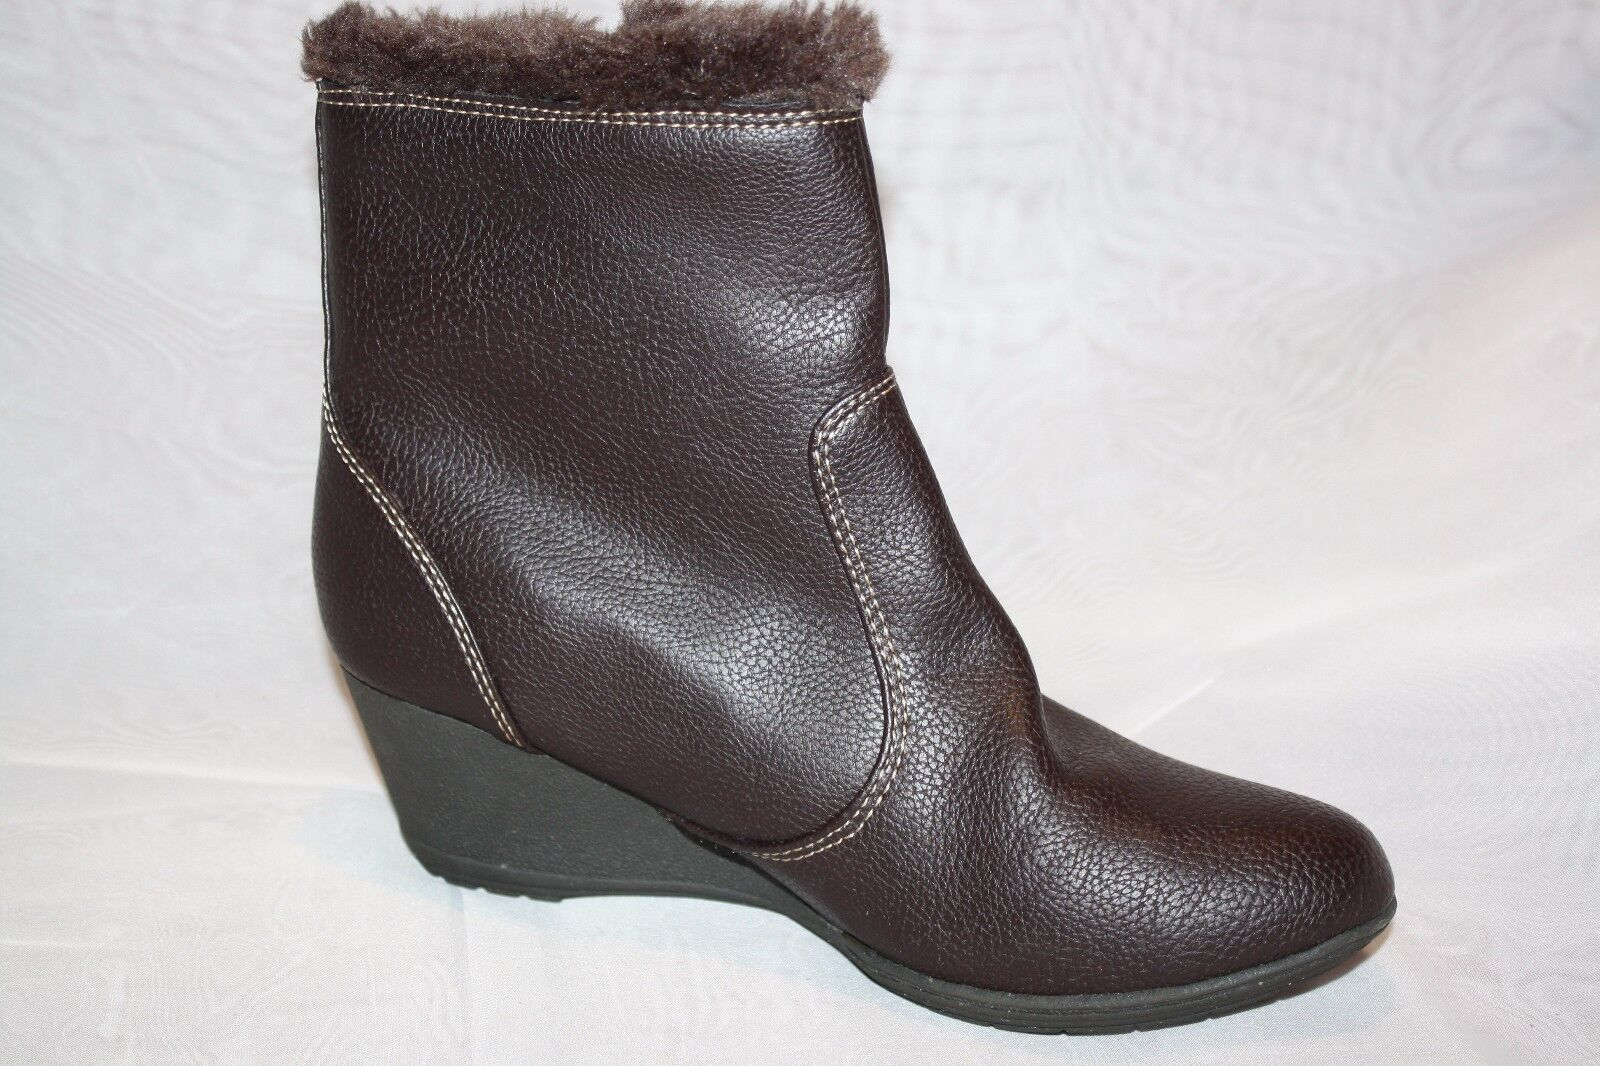 Softspots Odele Brown Faux Fur Trim Wedge Side Zip Ankle Boots Womens Size 6.5 M